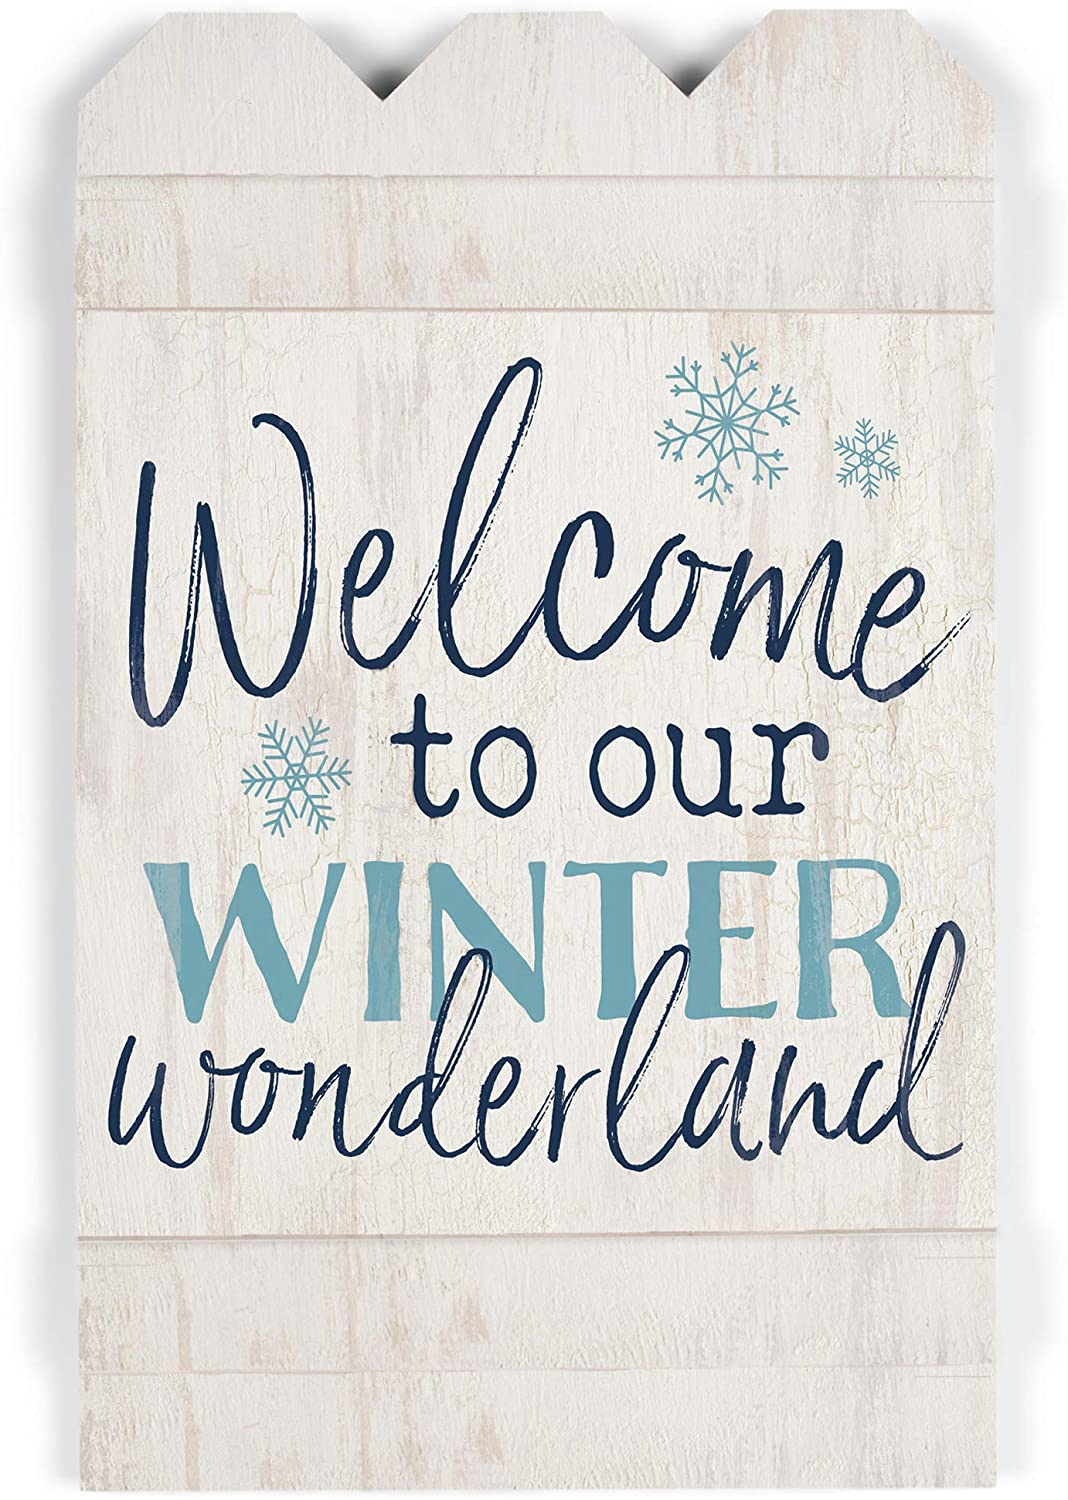 P. Graham Dunn Welcome to Our Winter Wonderland White 17 x 10.5 Wood Christmas Embellished Sign